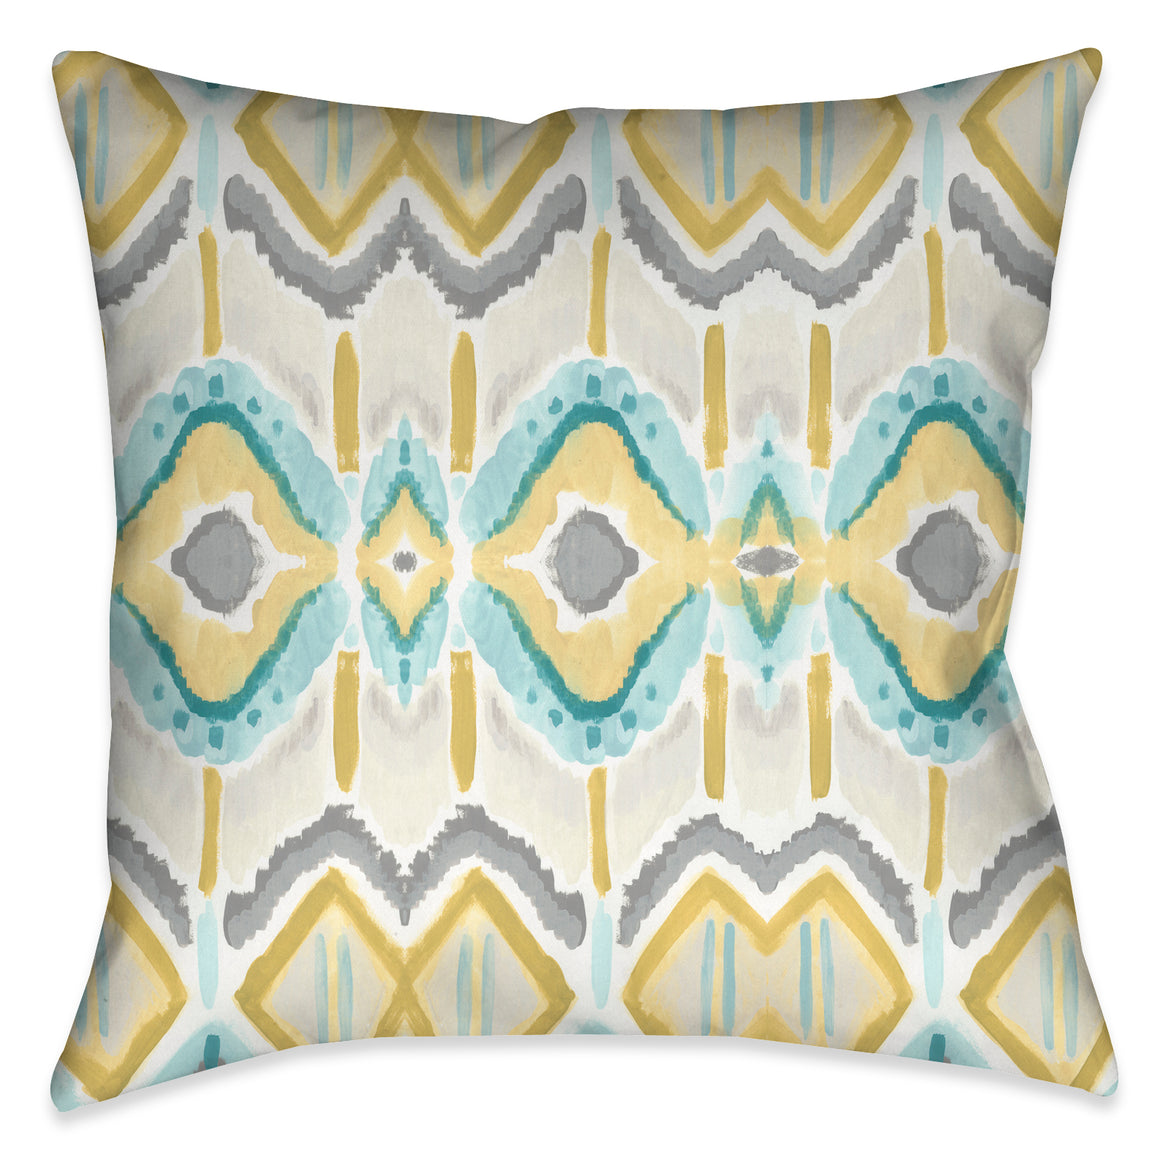 The design motif on this outdoor decorative pillow evokes a unique artistic hand quality, exposing a beautiful tile-like impression through painterly strokes.